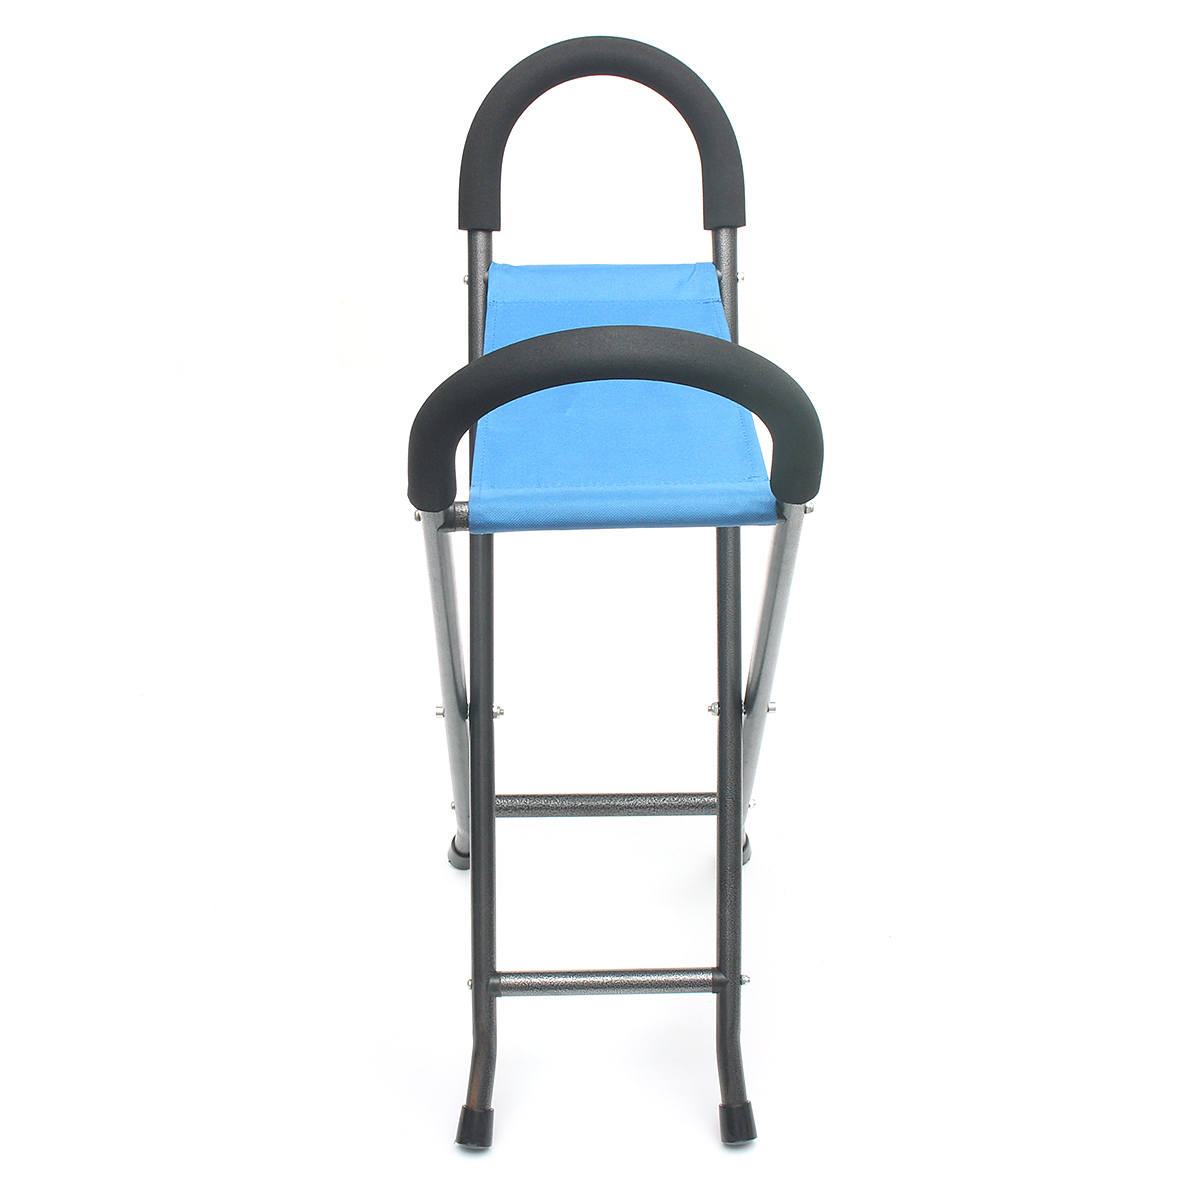 walking cane seat chairs tall desk chair ipree multi function folding pyramid